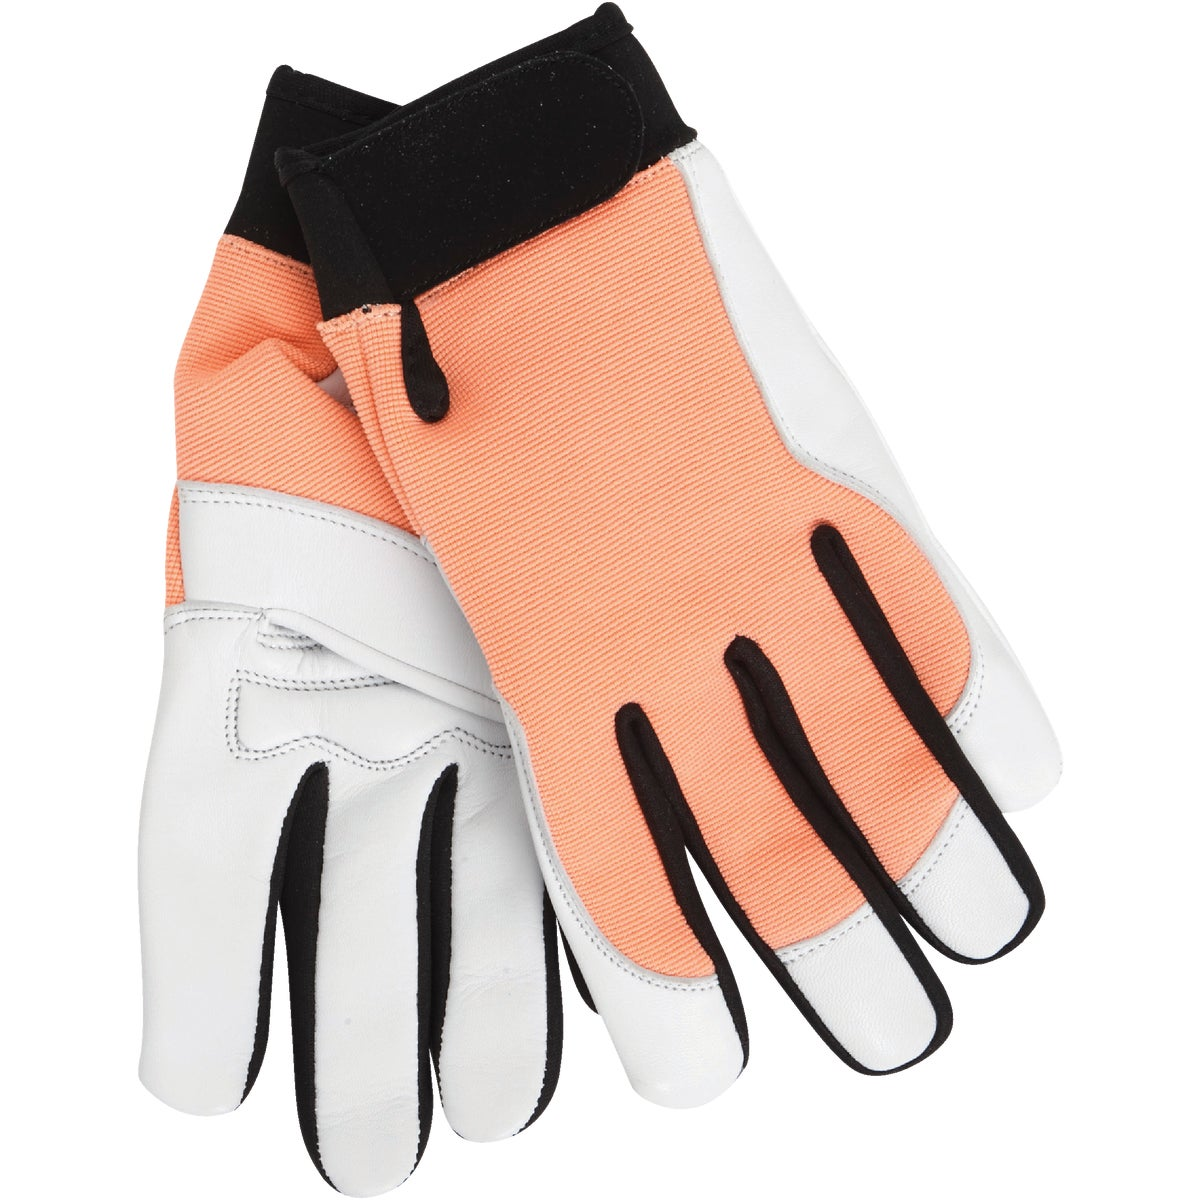 SML WOMENS SUEDE GLOVE - 1049S by Wells Lamont